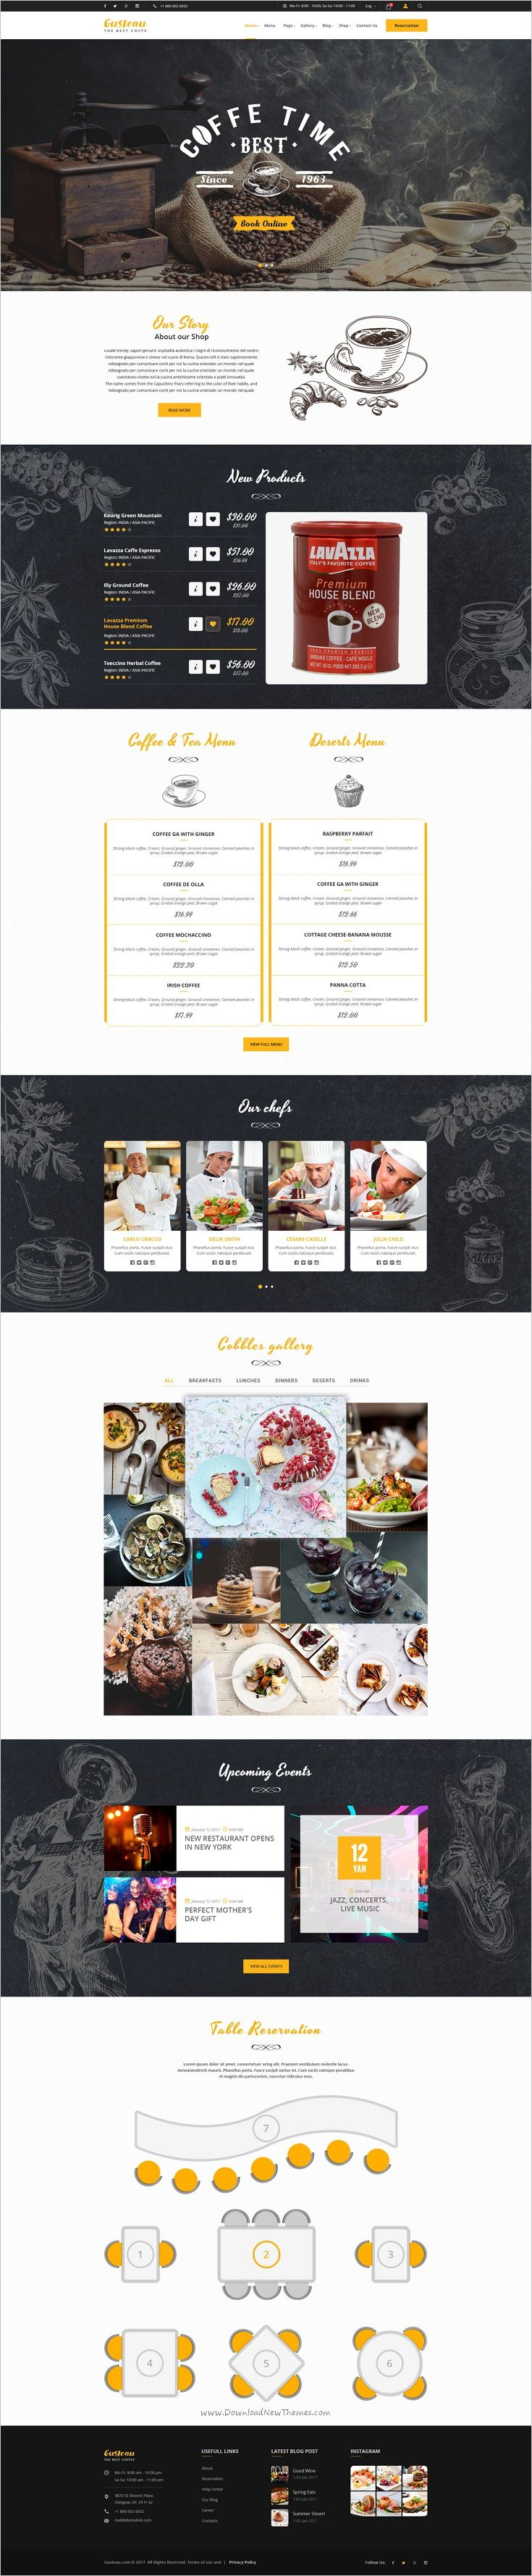 Gusteau Restaurant PSD Template 111 best